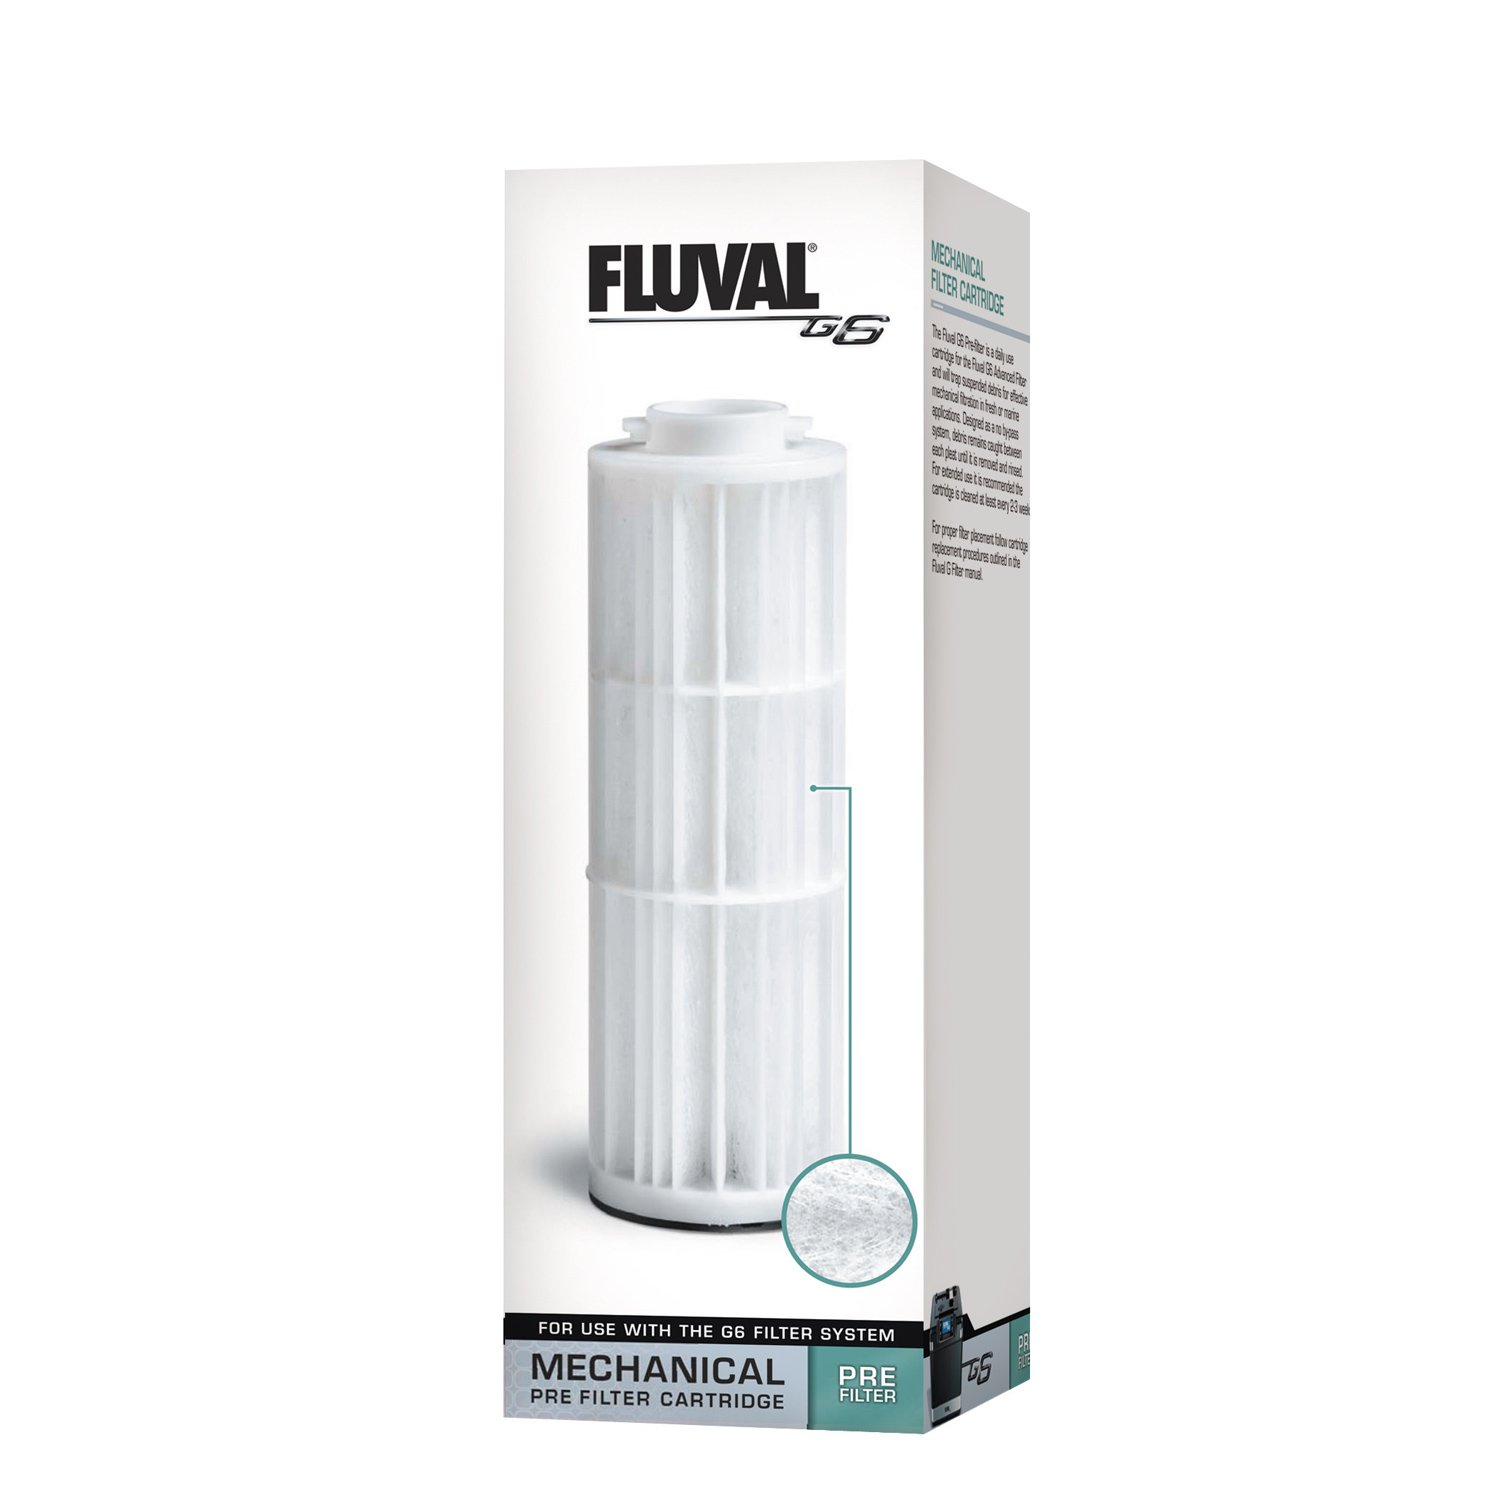 Fluval g6 pre filter cartridge petco for Petco fish tank filters